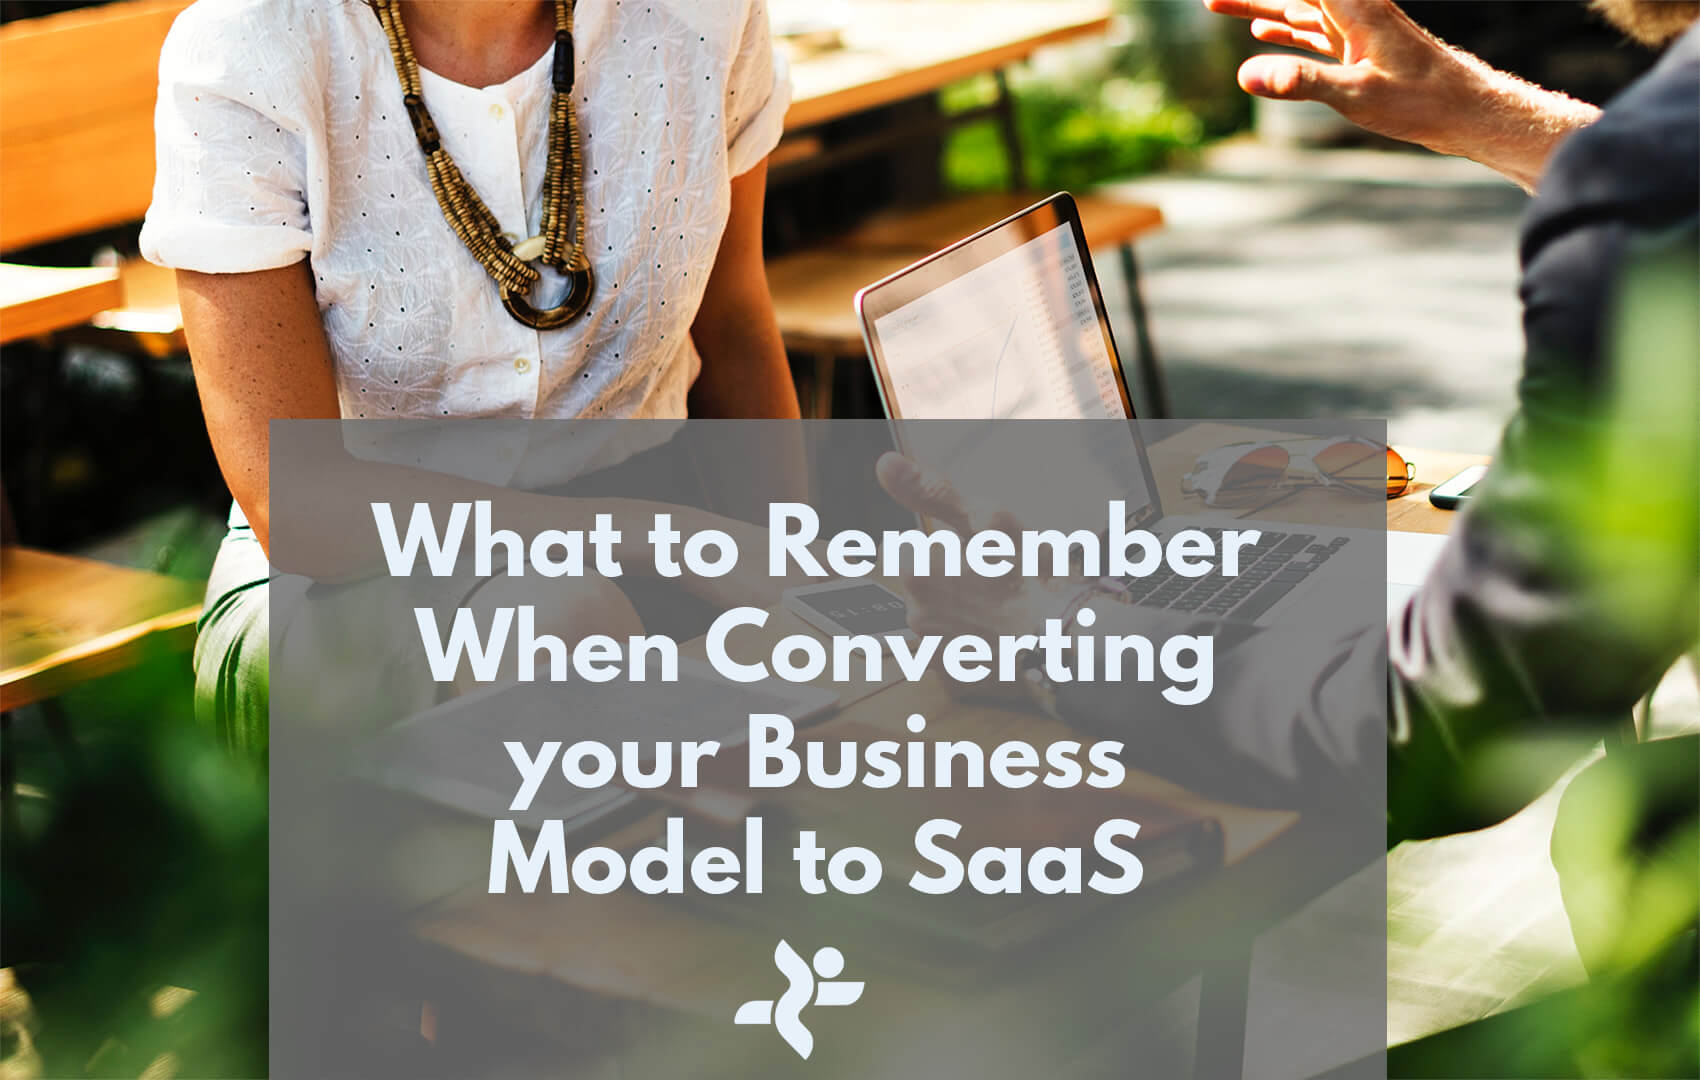 Alacrity's 5 Tips for Converting your Business Model to SaaS